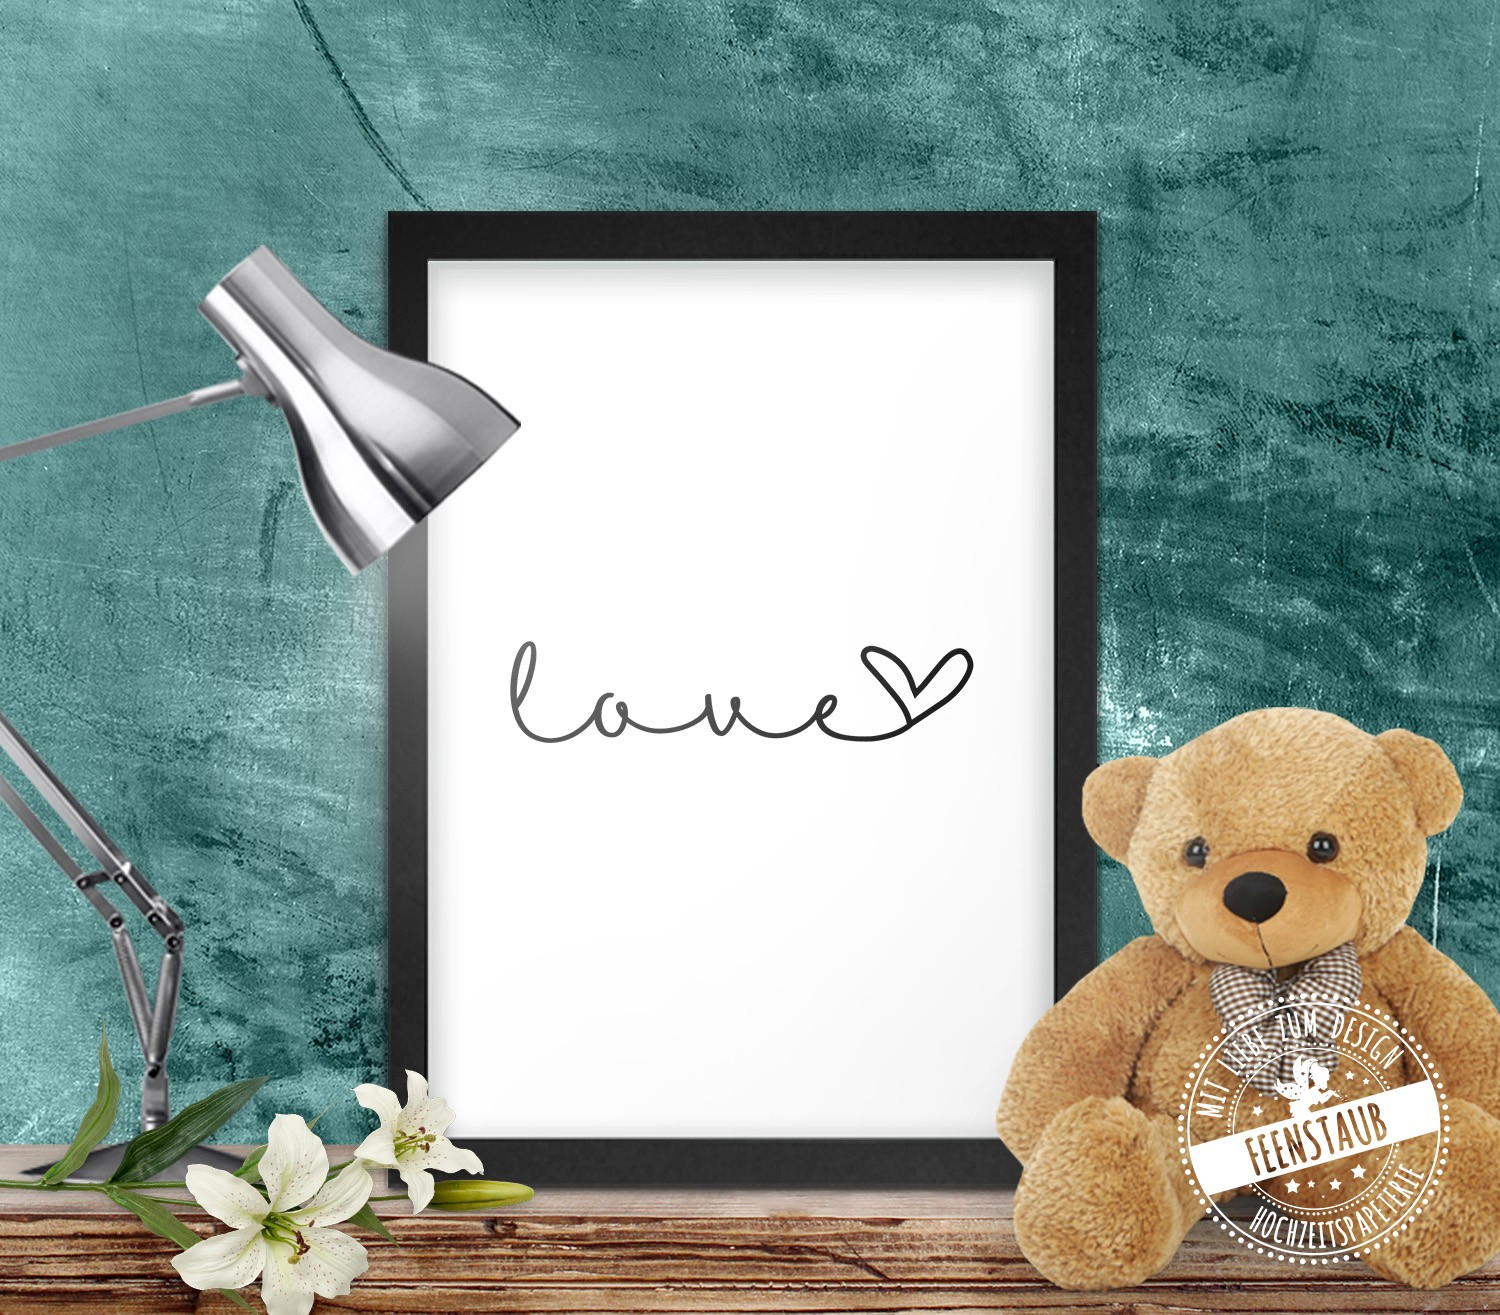 Print Poster Leinwand Just Love Feenstaub At Shop